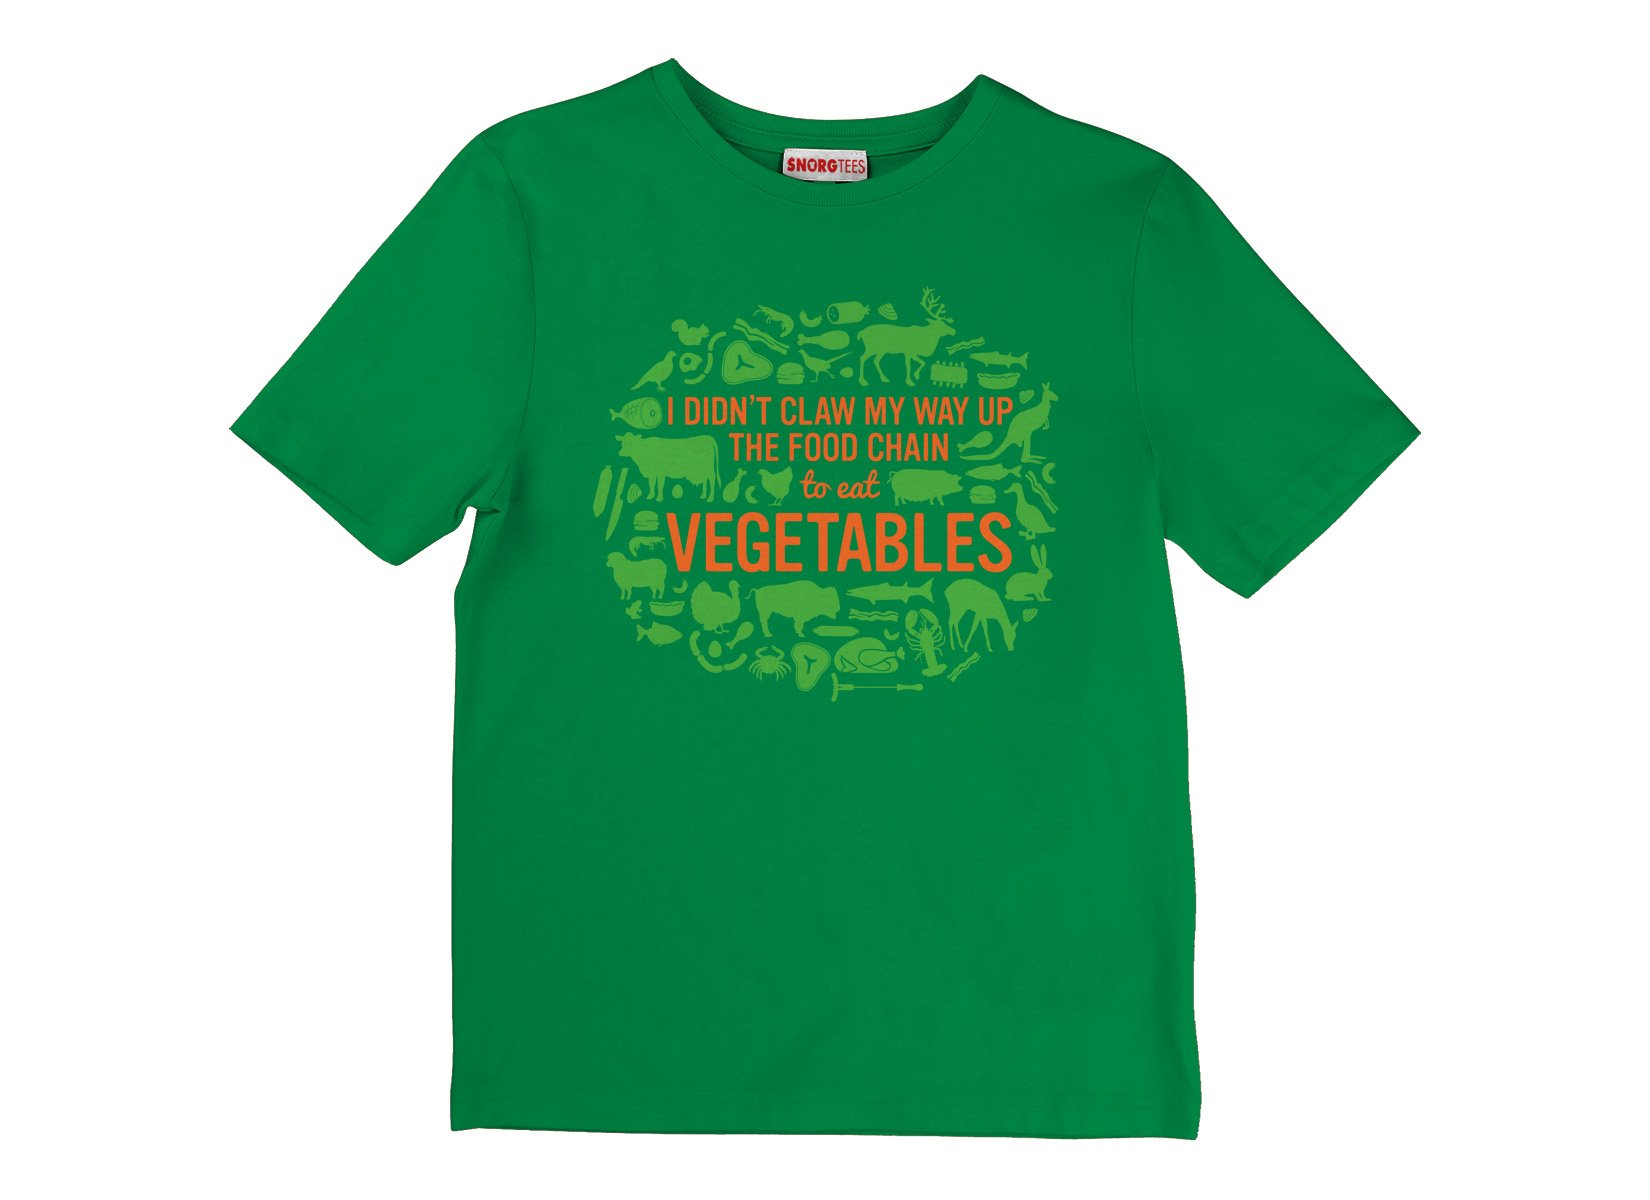 Top Of The Food Chain on Kids T-Shirt